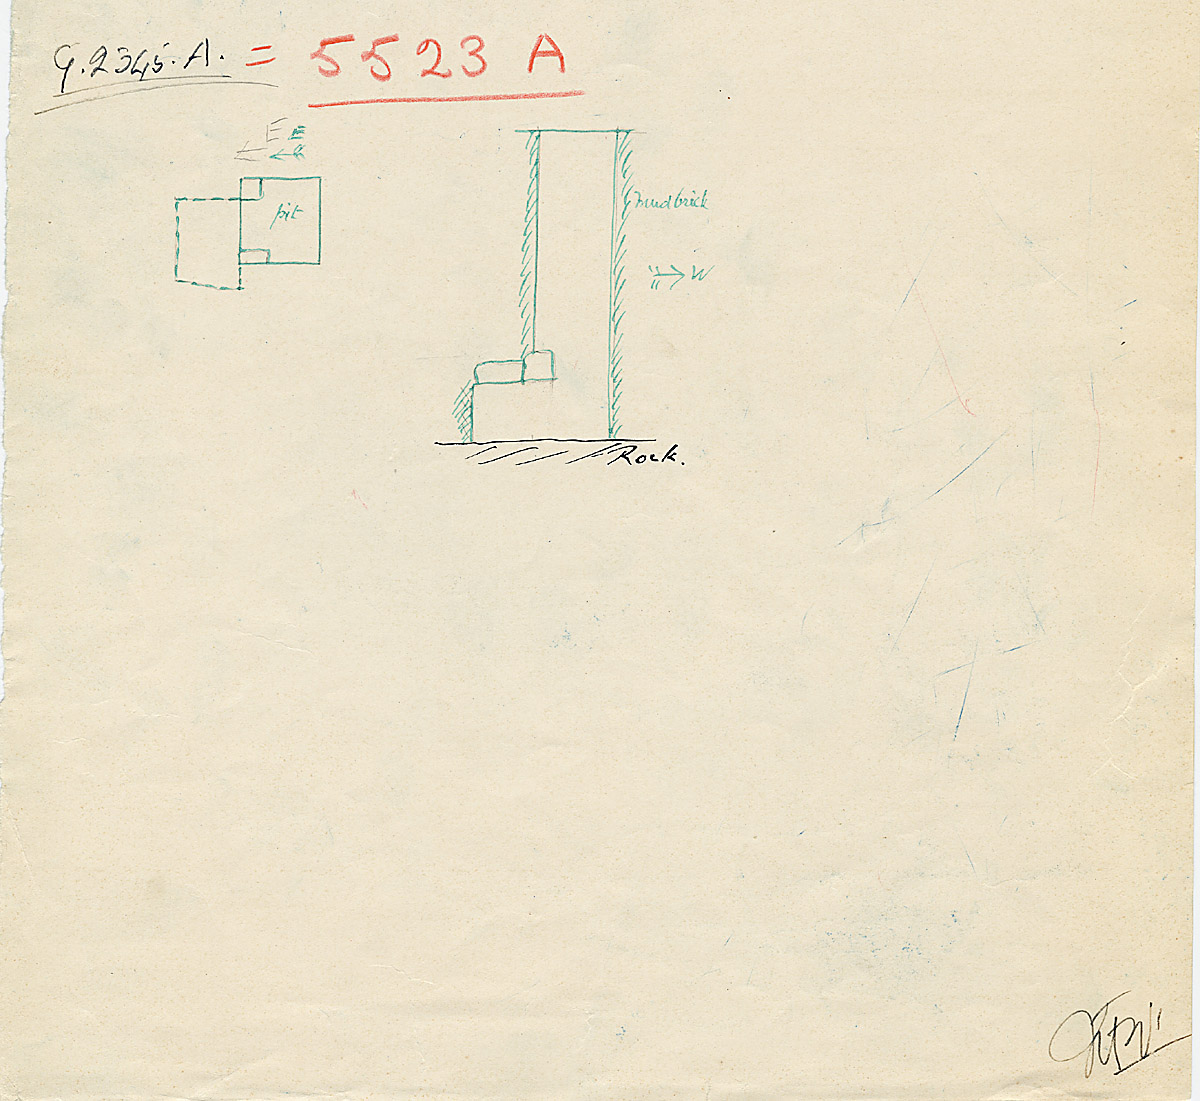 Maps and plans: G 2345 = G 5523, Shaft A